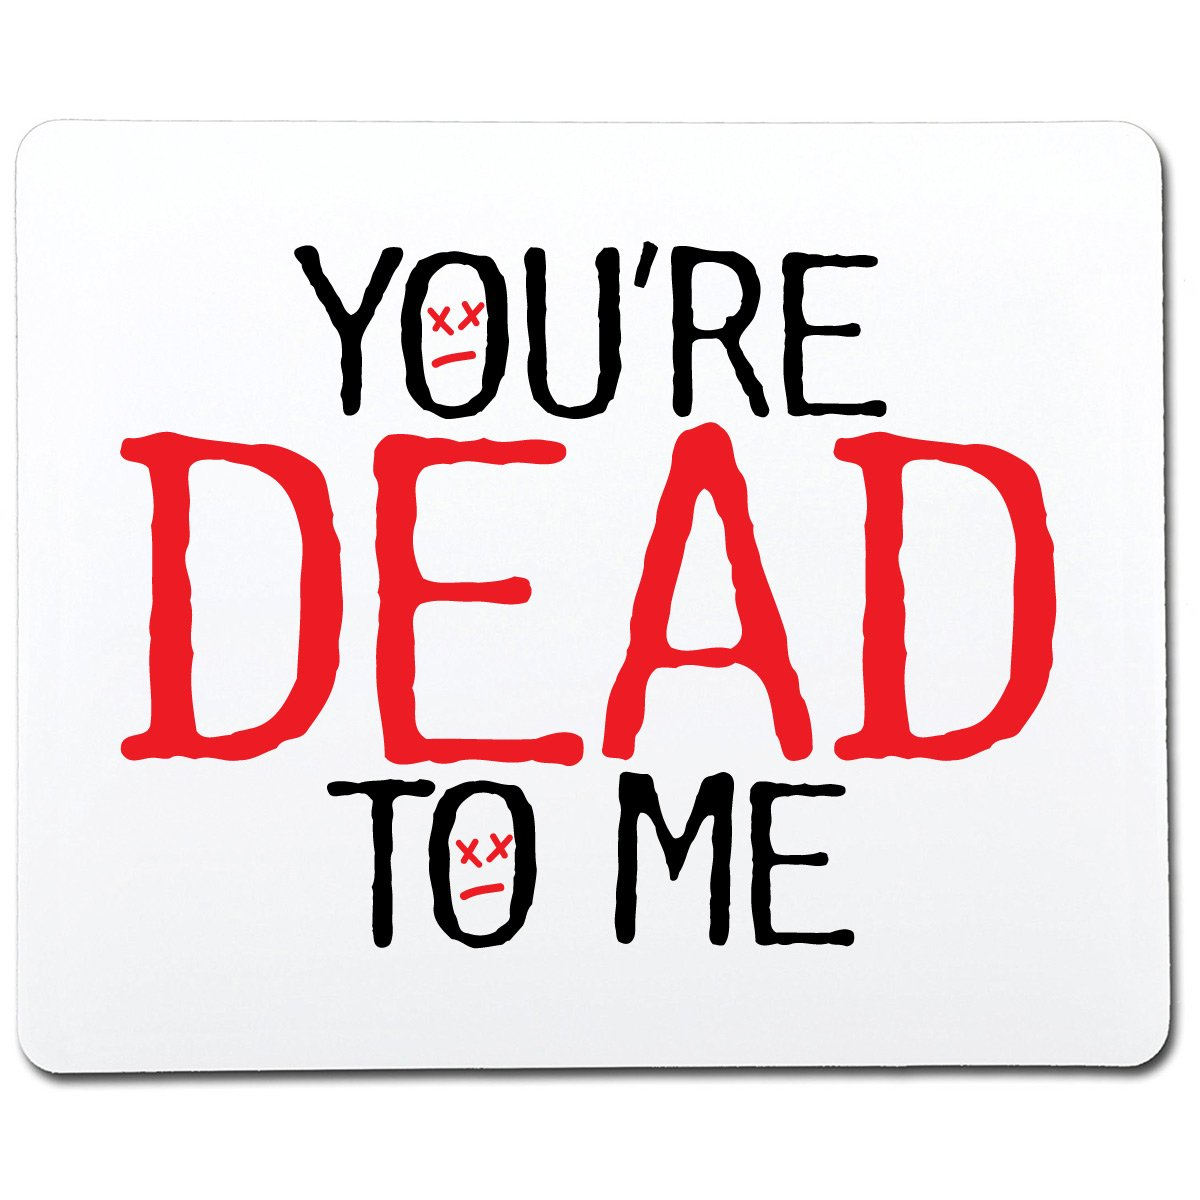 Amazon.com: You're Dead to Me Gift Funny Gag Gift Co-Worker Gift Novelty Mouse Pad Computer Accessory: MP3 Players & Accessories